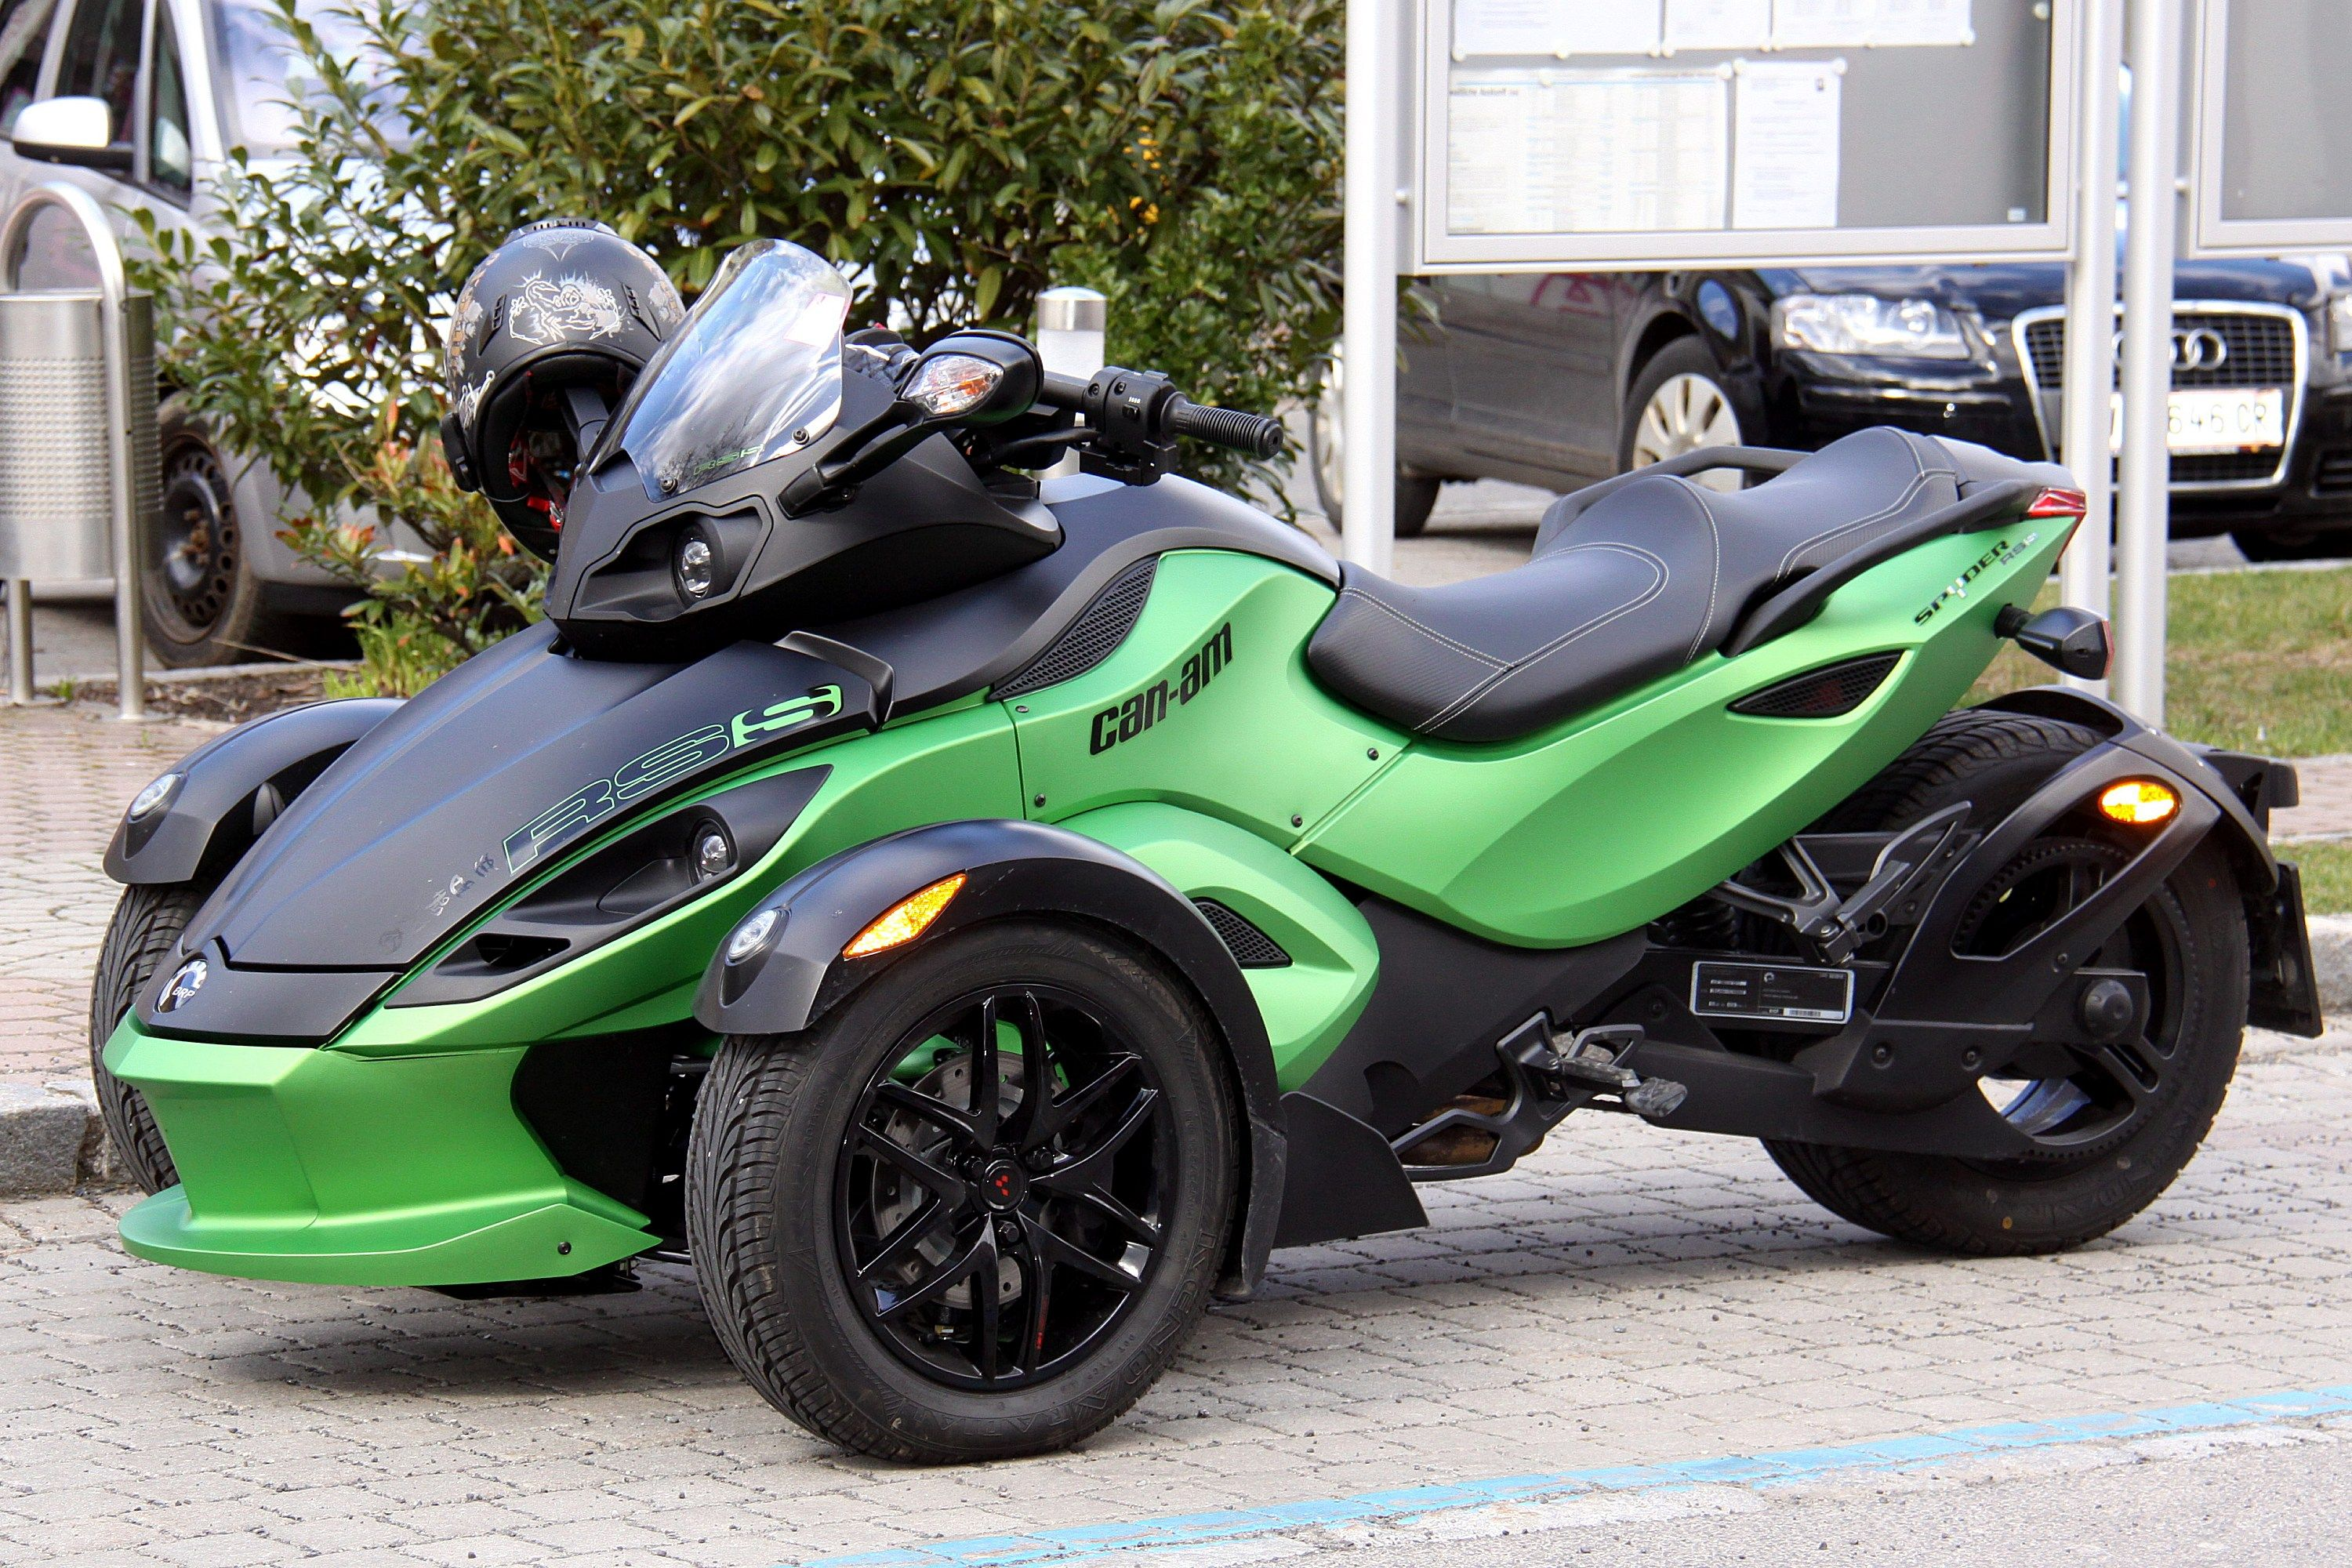 Brp can am spyder roadster wikipedia the free encyclopedia